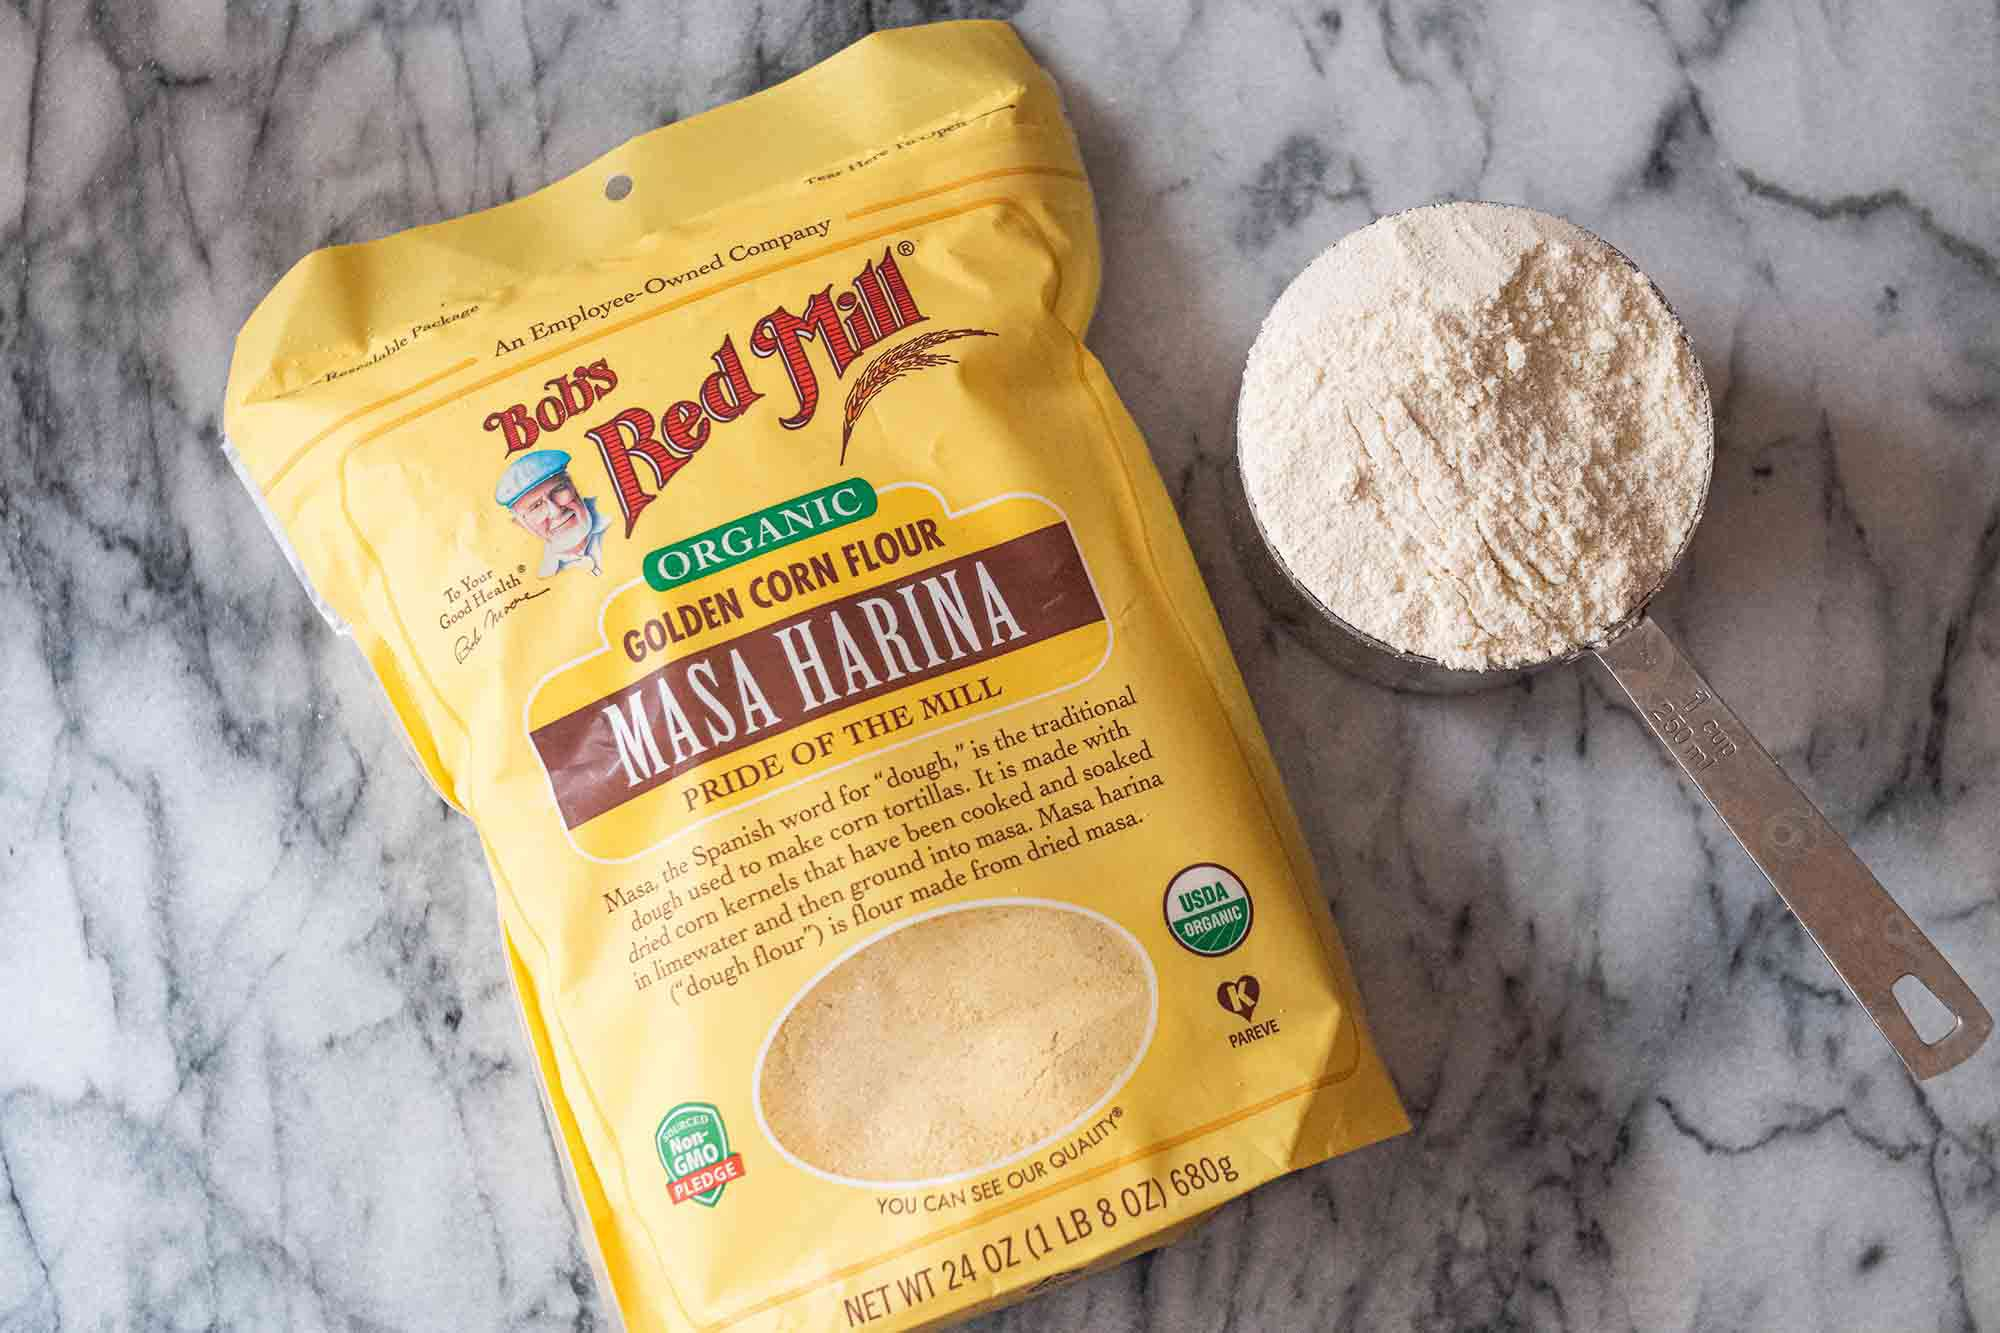 Bob's Red Mill Masa Harina on a marble backdrop with a measuring cup filled with the corn flour.